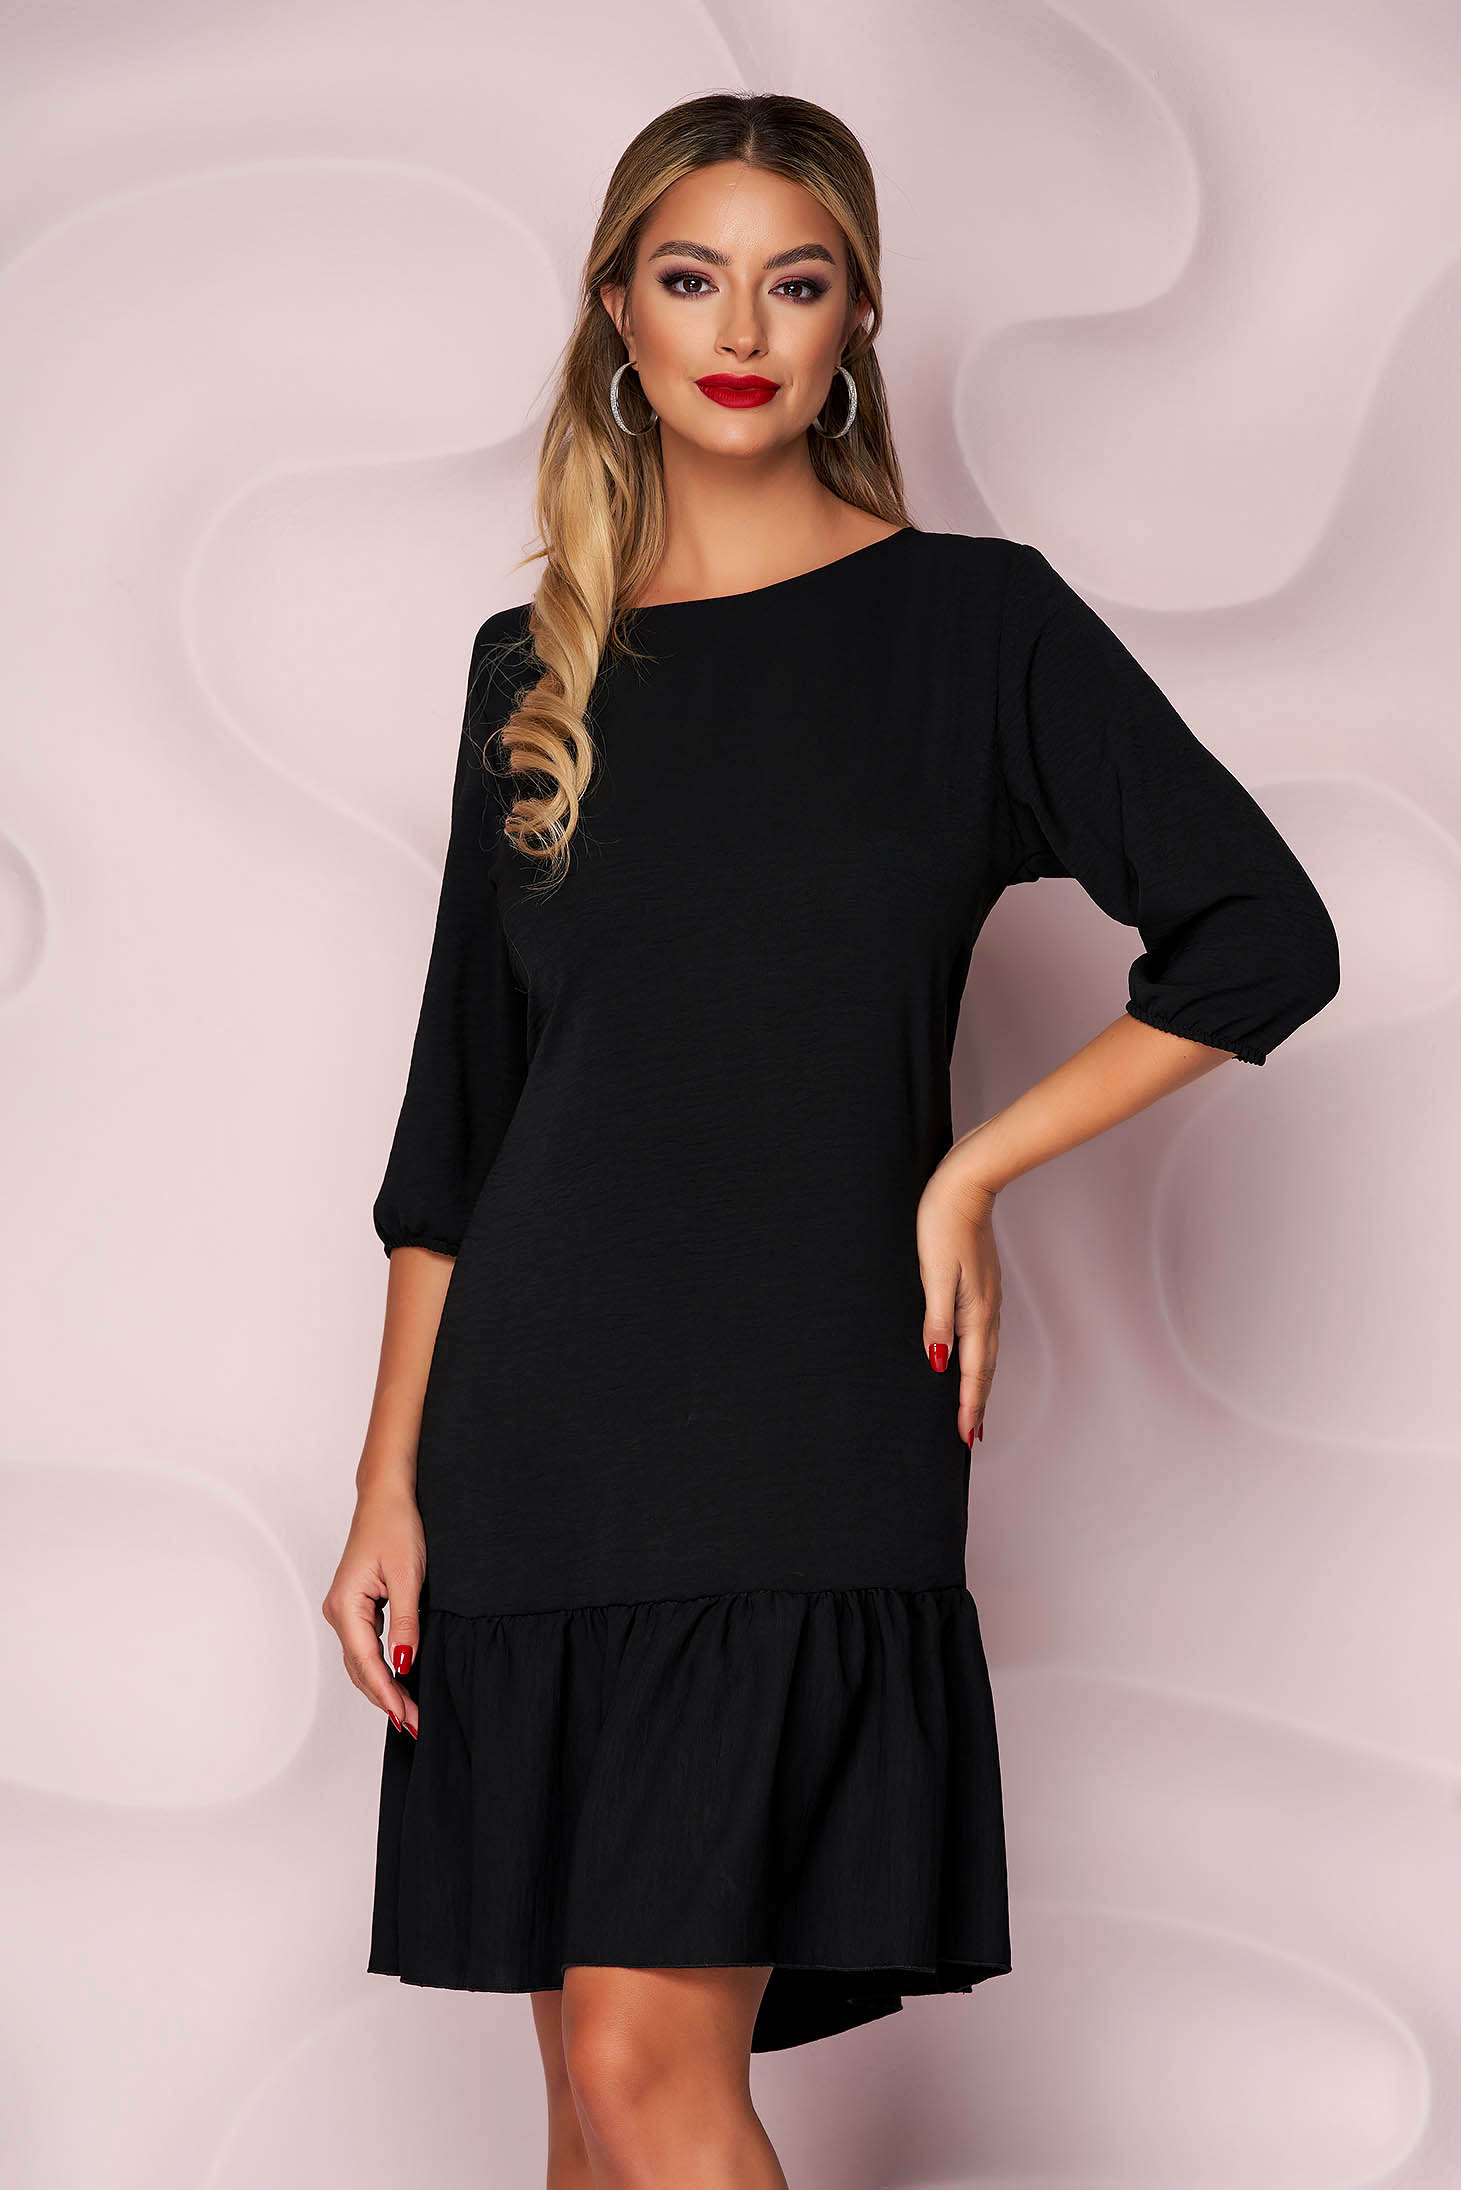 Black dress with ruffle details from veil fabric loose fit with 3/4 sleeves